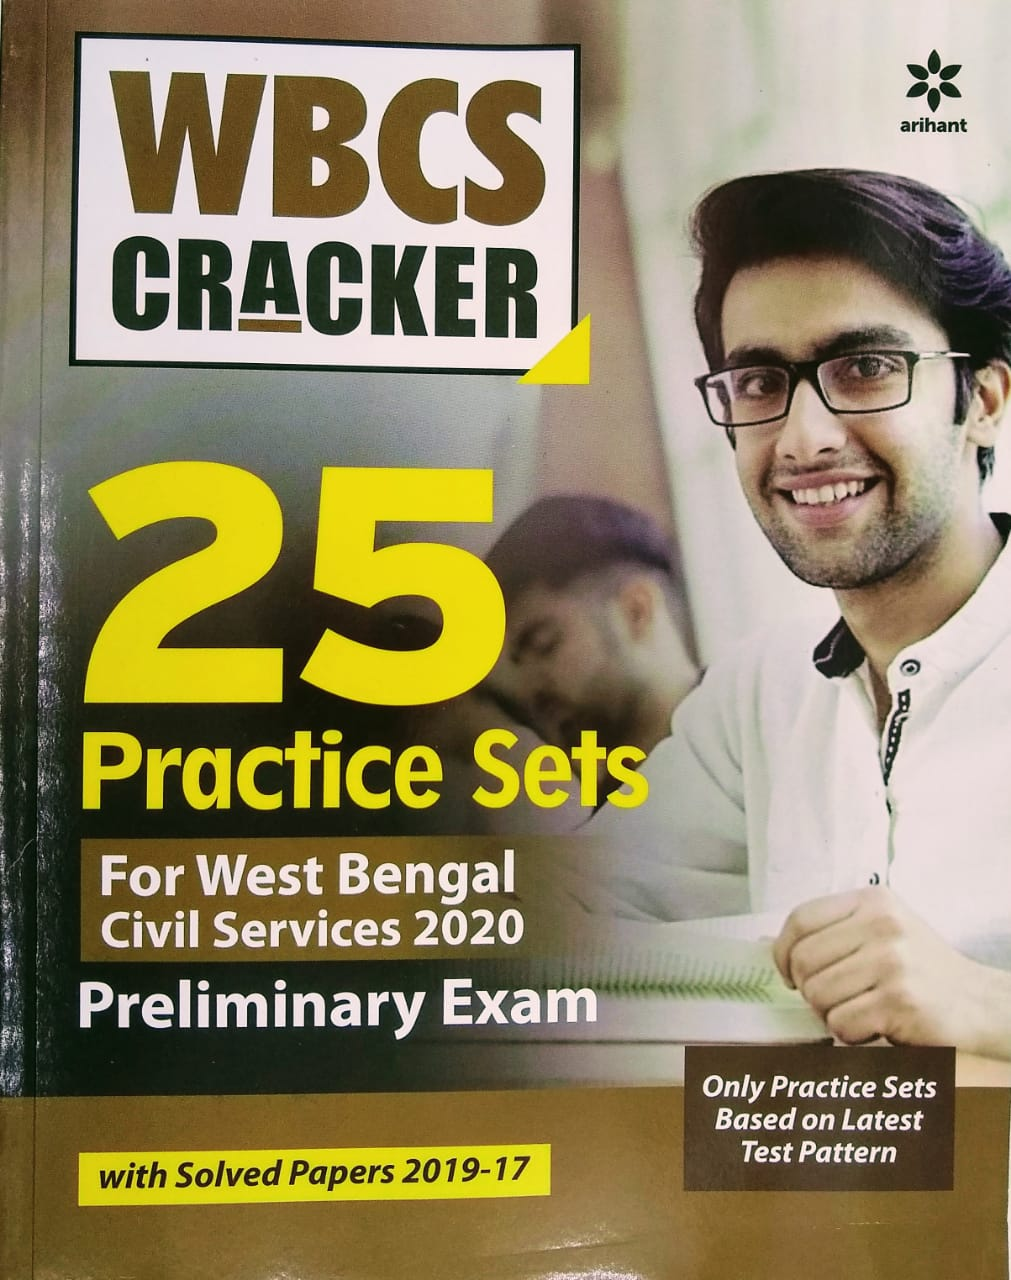 Arihant WBCS CRACKER 25 Practice Sets